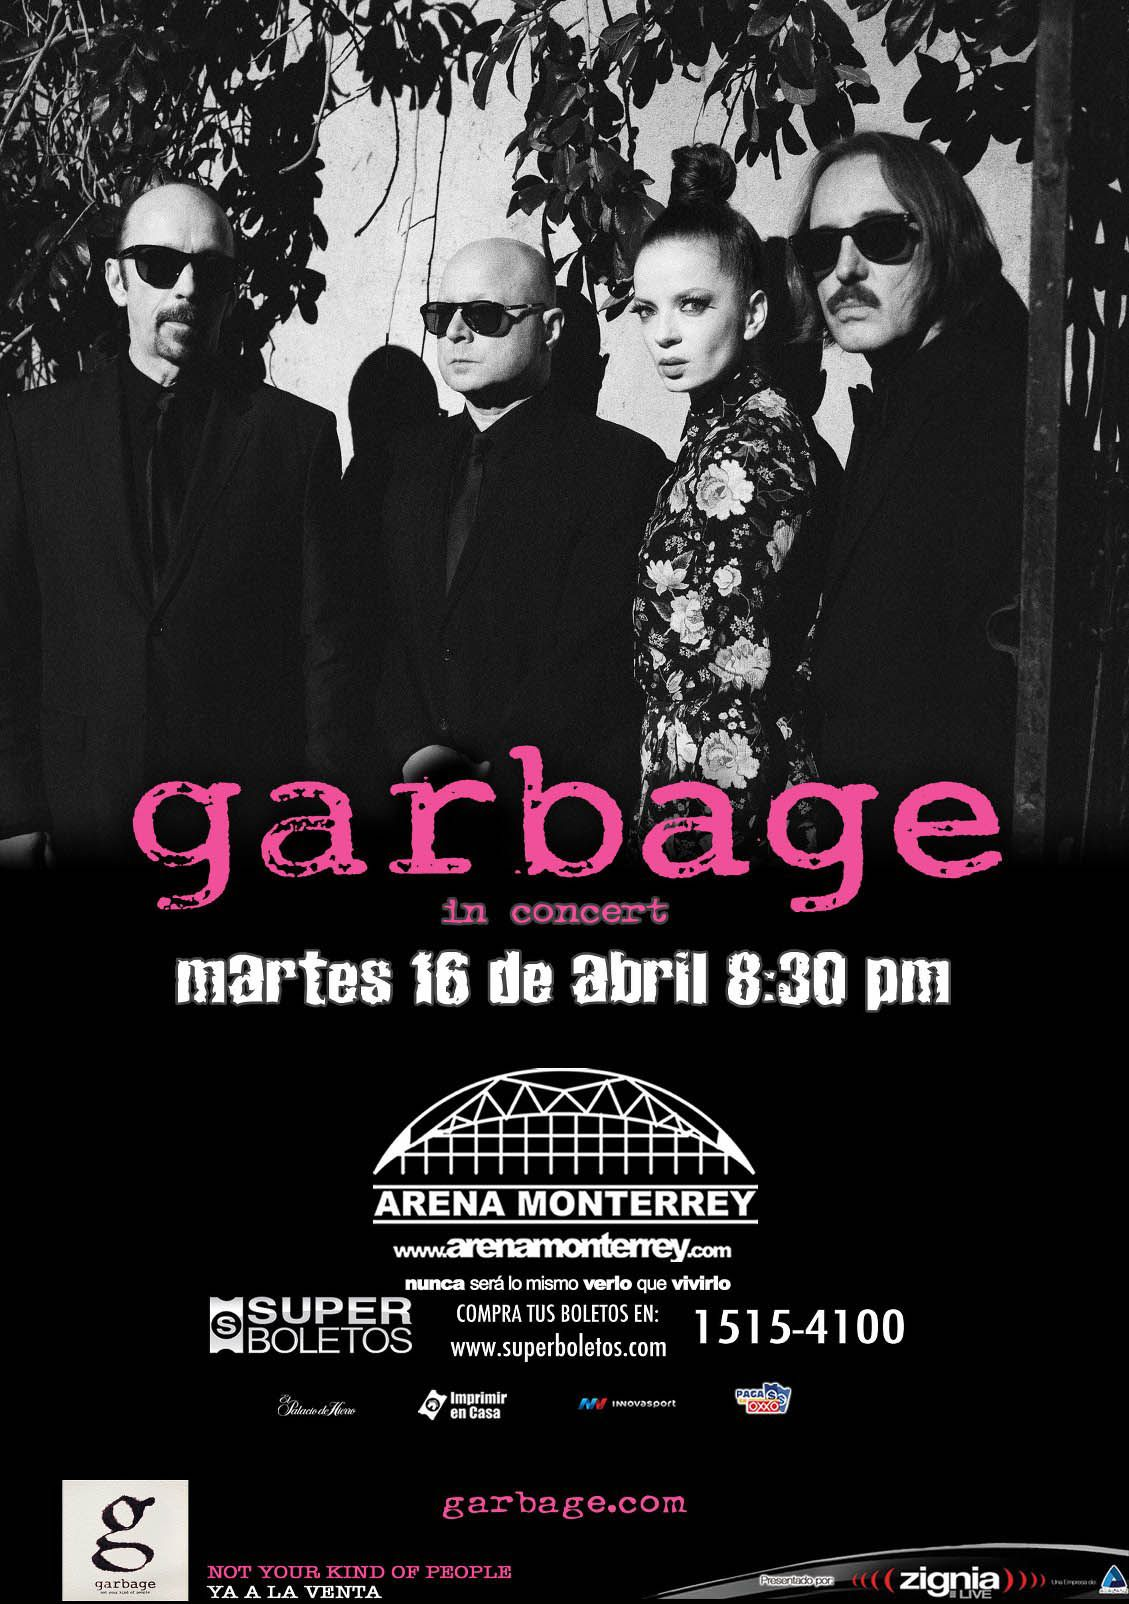 Garbage Band Posters Concert Posters Concert